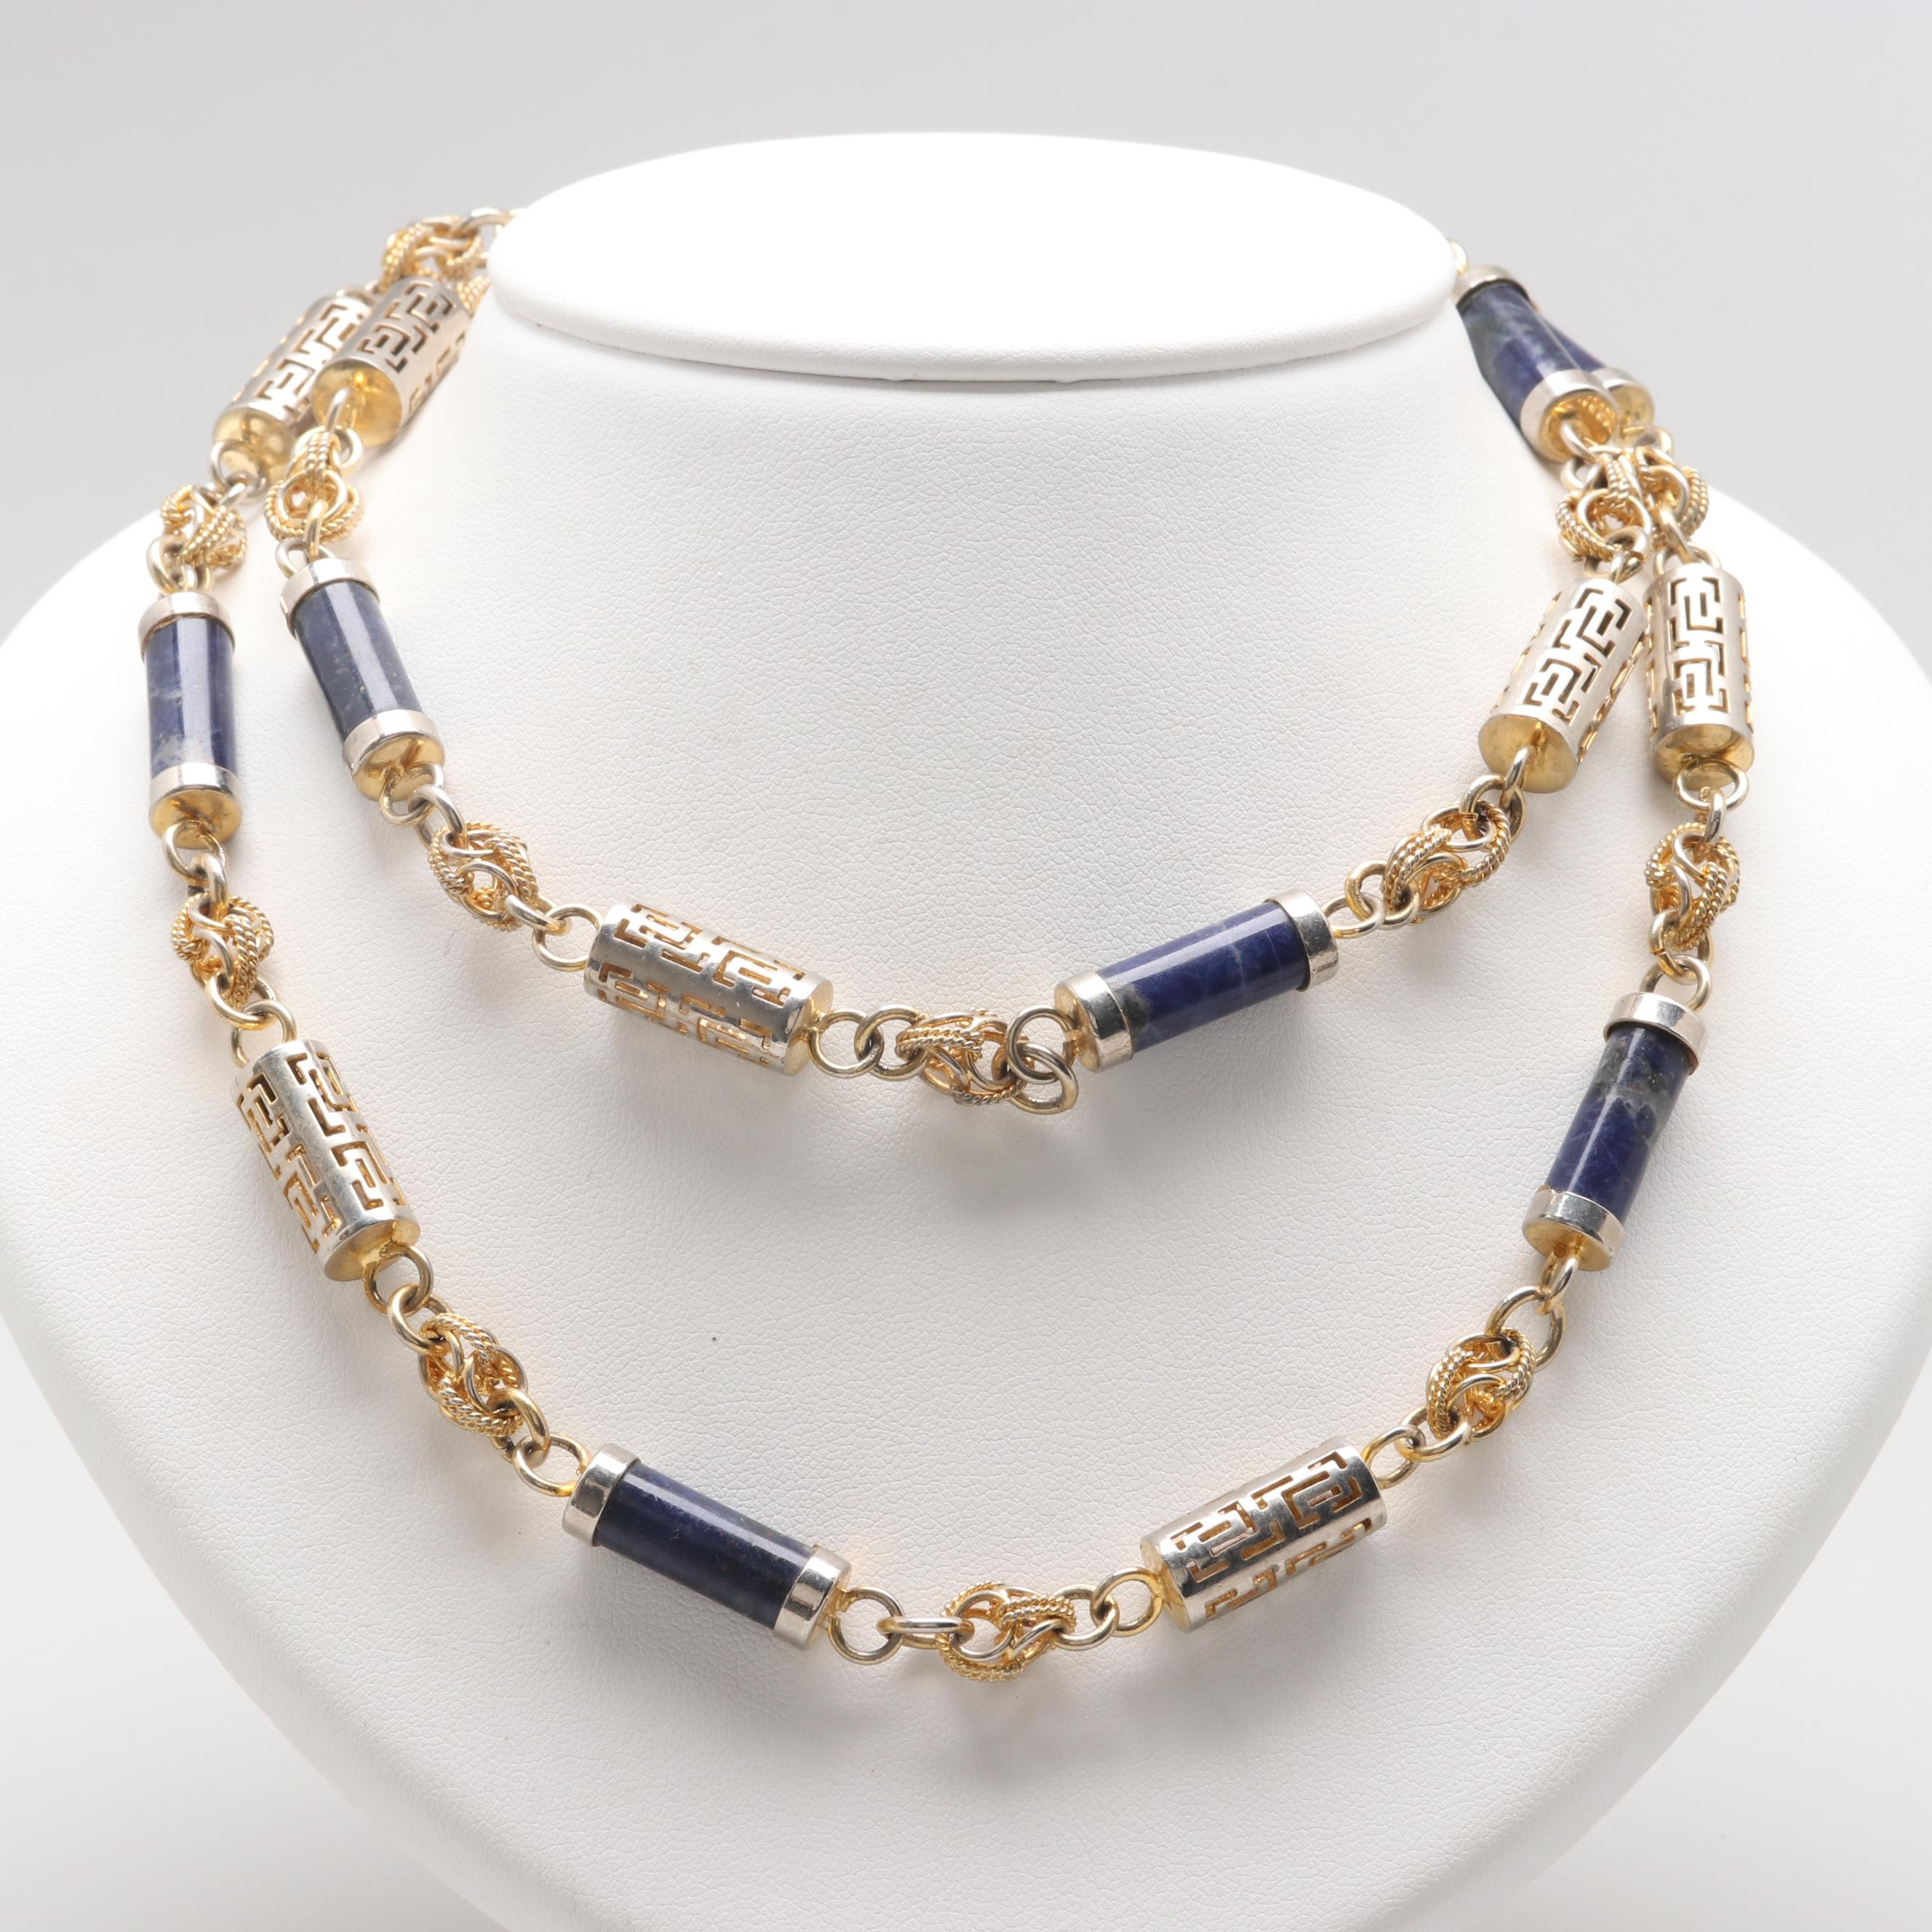 Gold and Silver Tone Necklace Featuring Sodalite